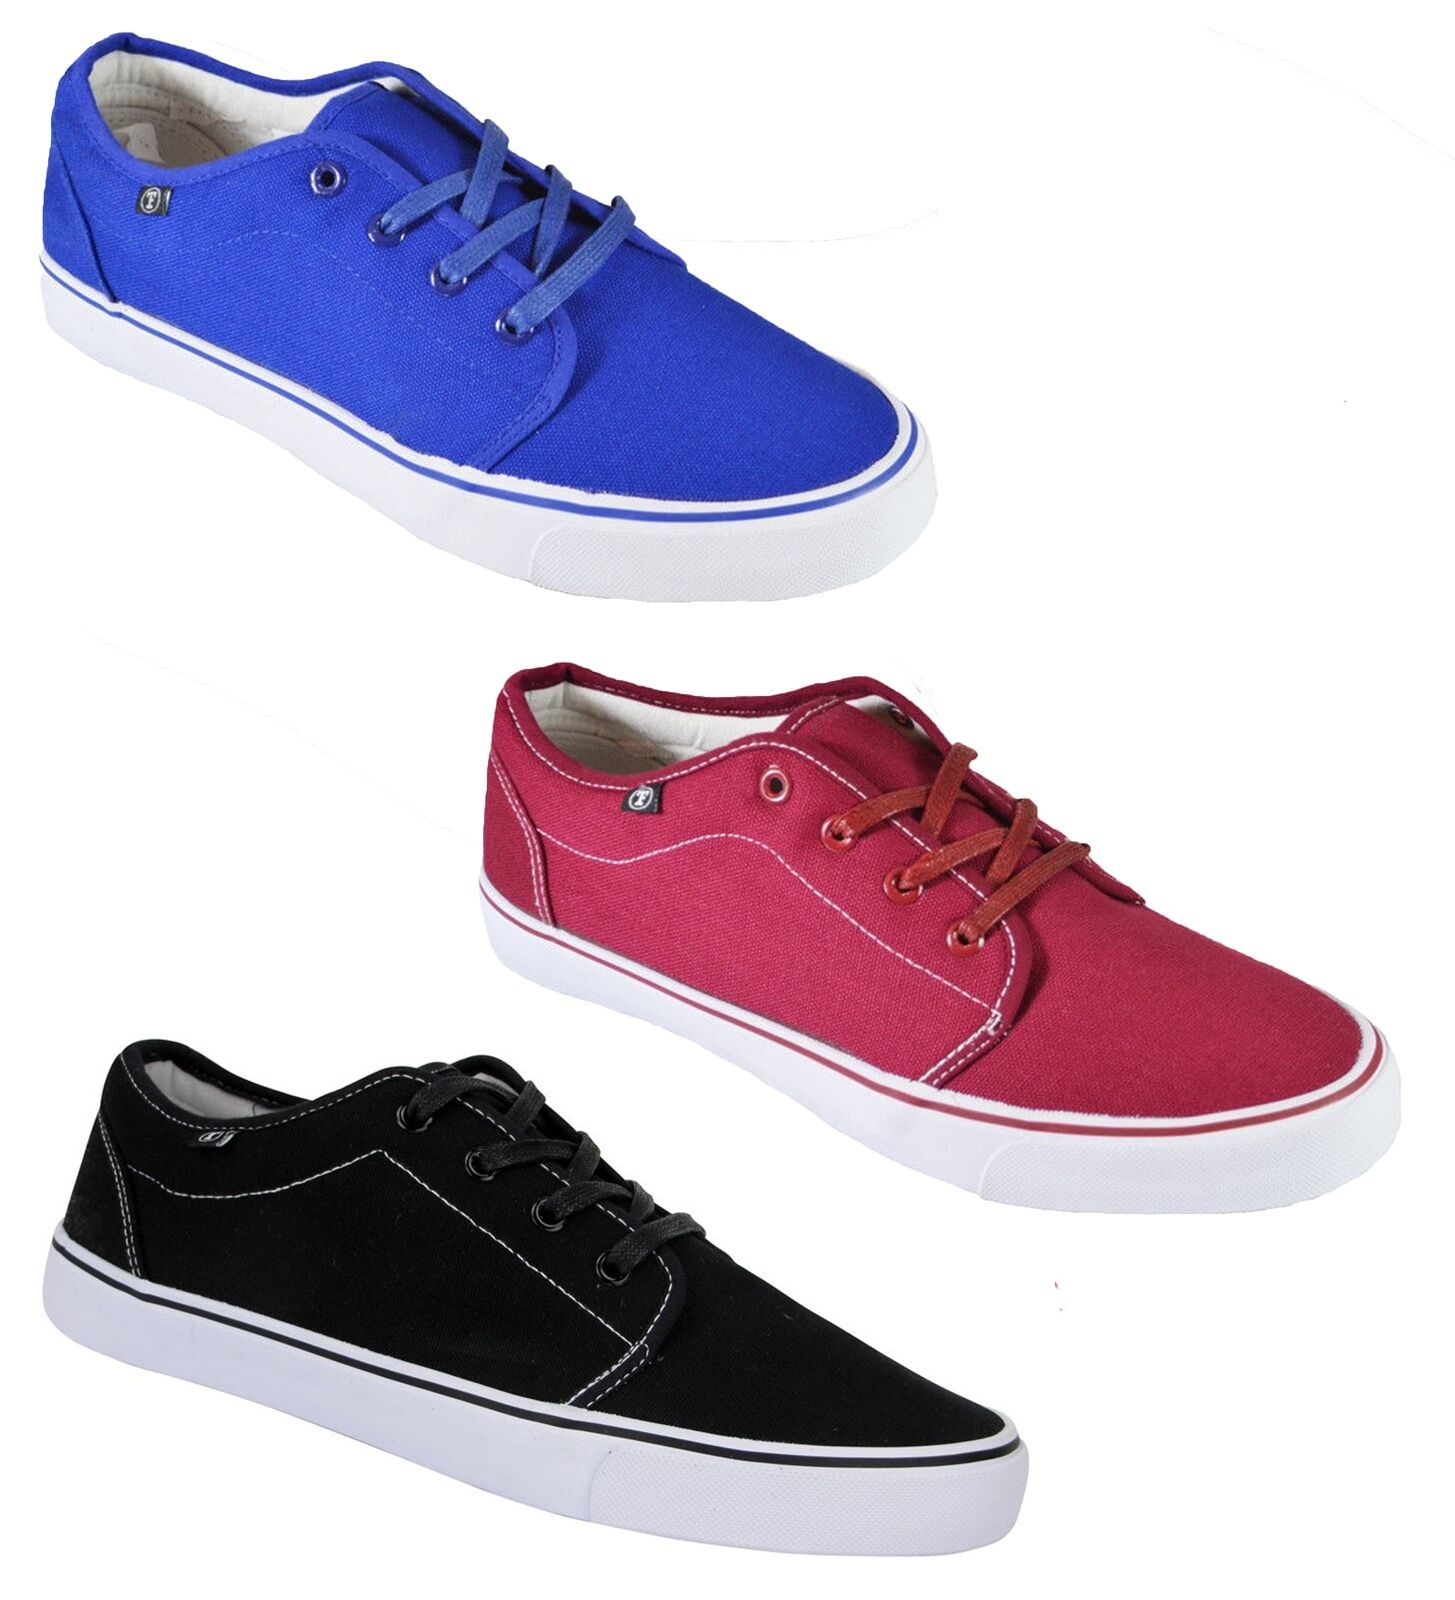 Twisted Faith New Canvas Shoes Footwear Plimsolls Trainers Fashion Footwear Shoes 5ccb67